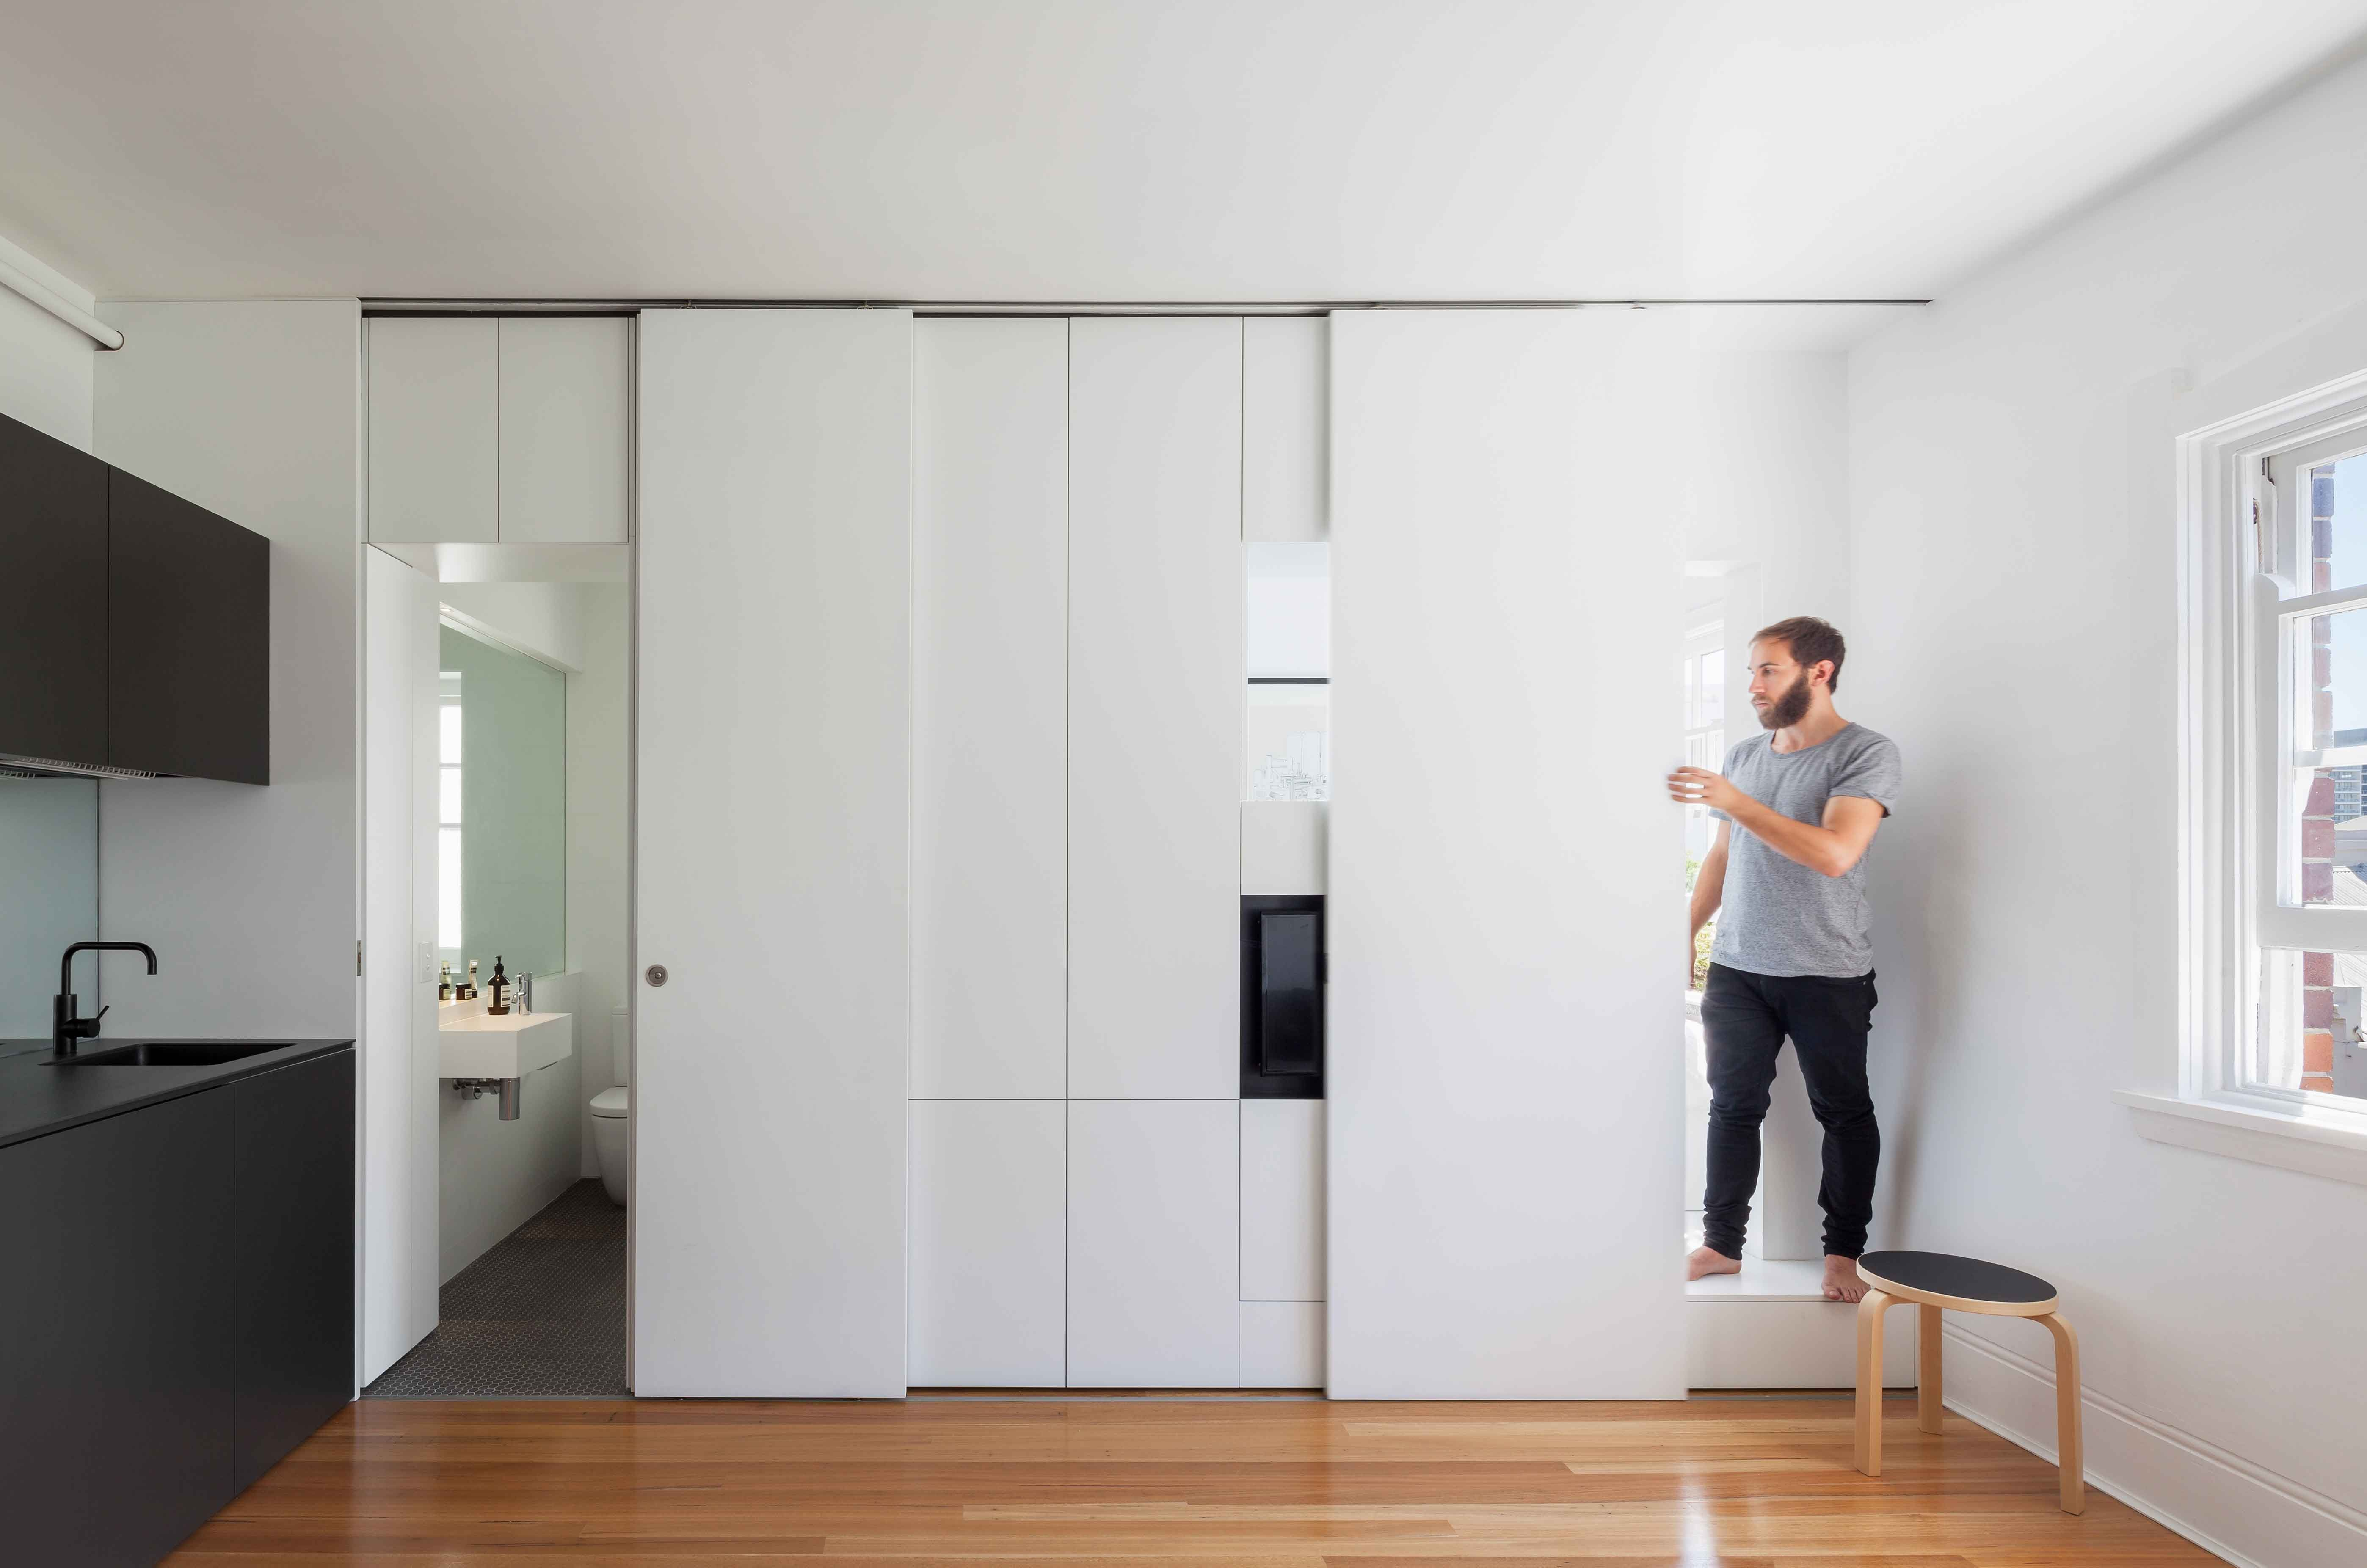 Planchonella House by Jesse Bennett Architect wins Australian - House of the Year - great kitchen